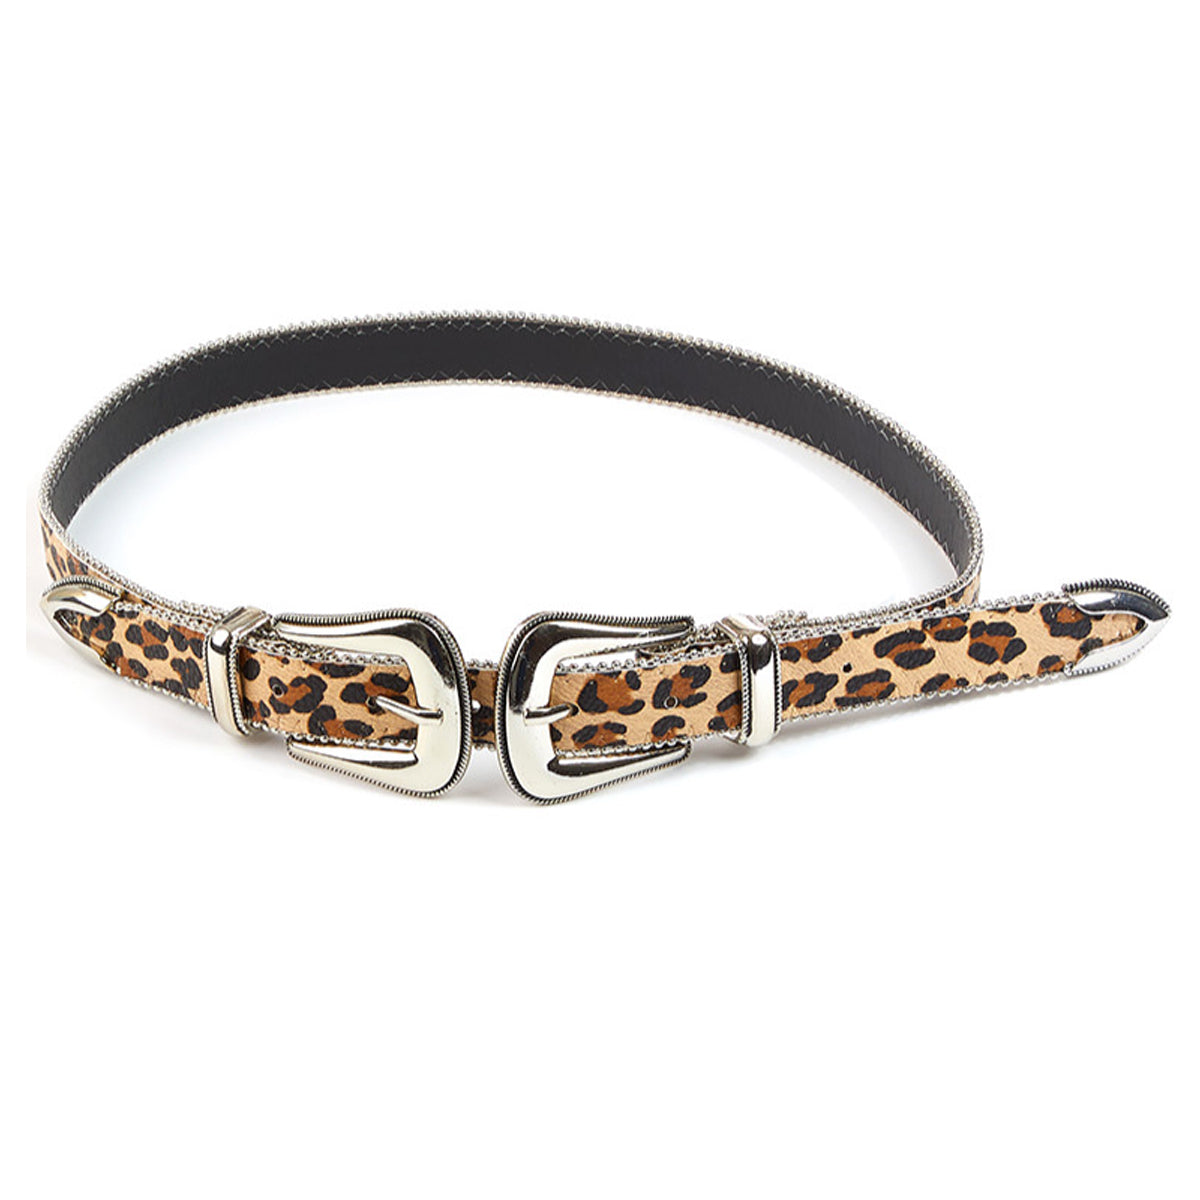 Fame Accessories Edge Studded Double Buckle Faux Leather Belt - Leopard